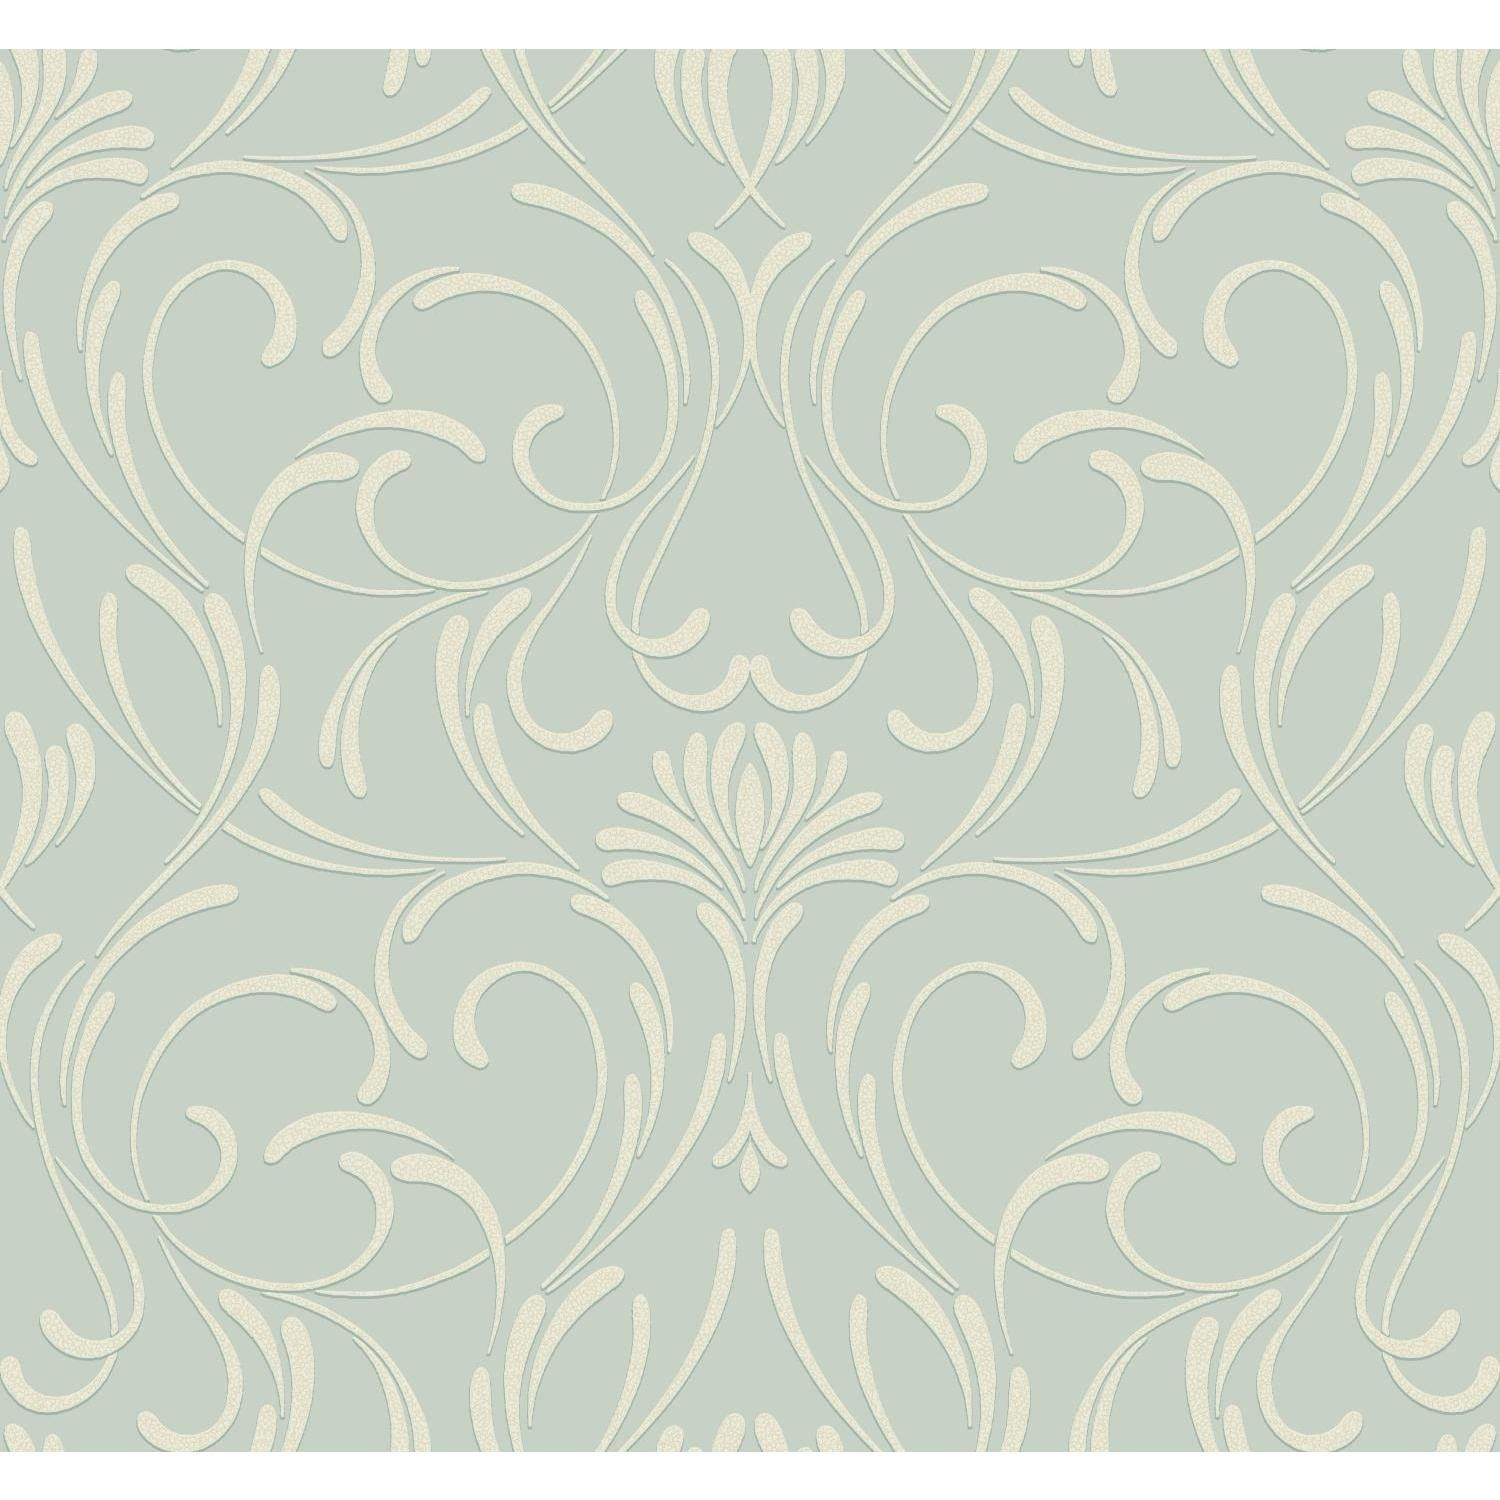 Candice Olson Decadence Amour 27 L X 27 W Wallpaper Roll Candice Olson Wallpaper Wallpaper Roll Wallpaper